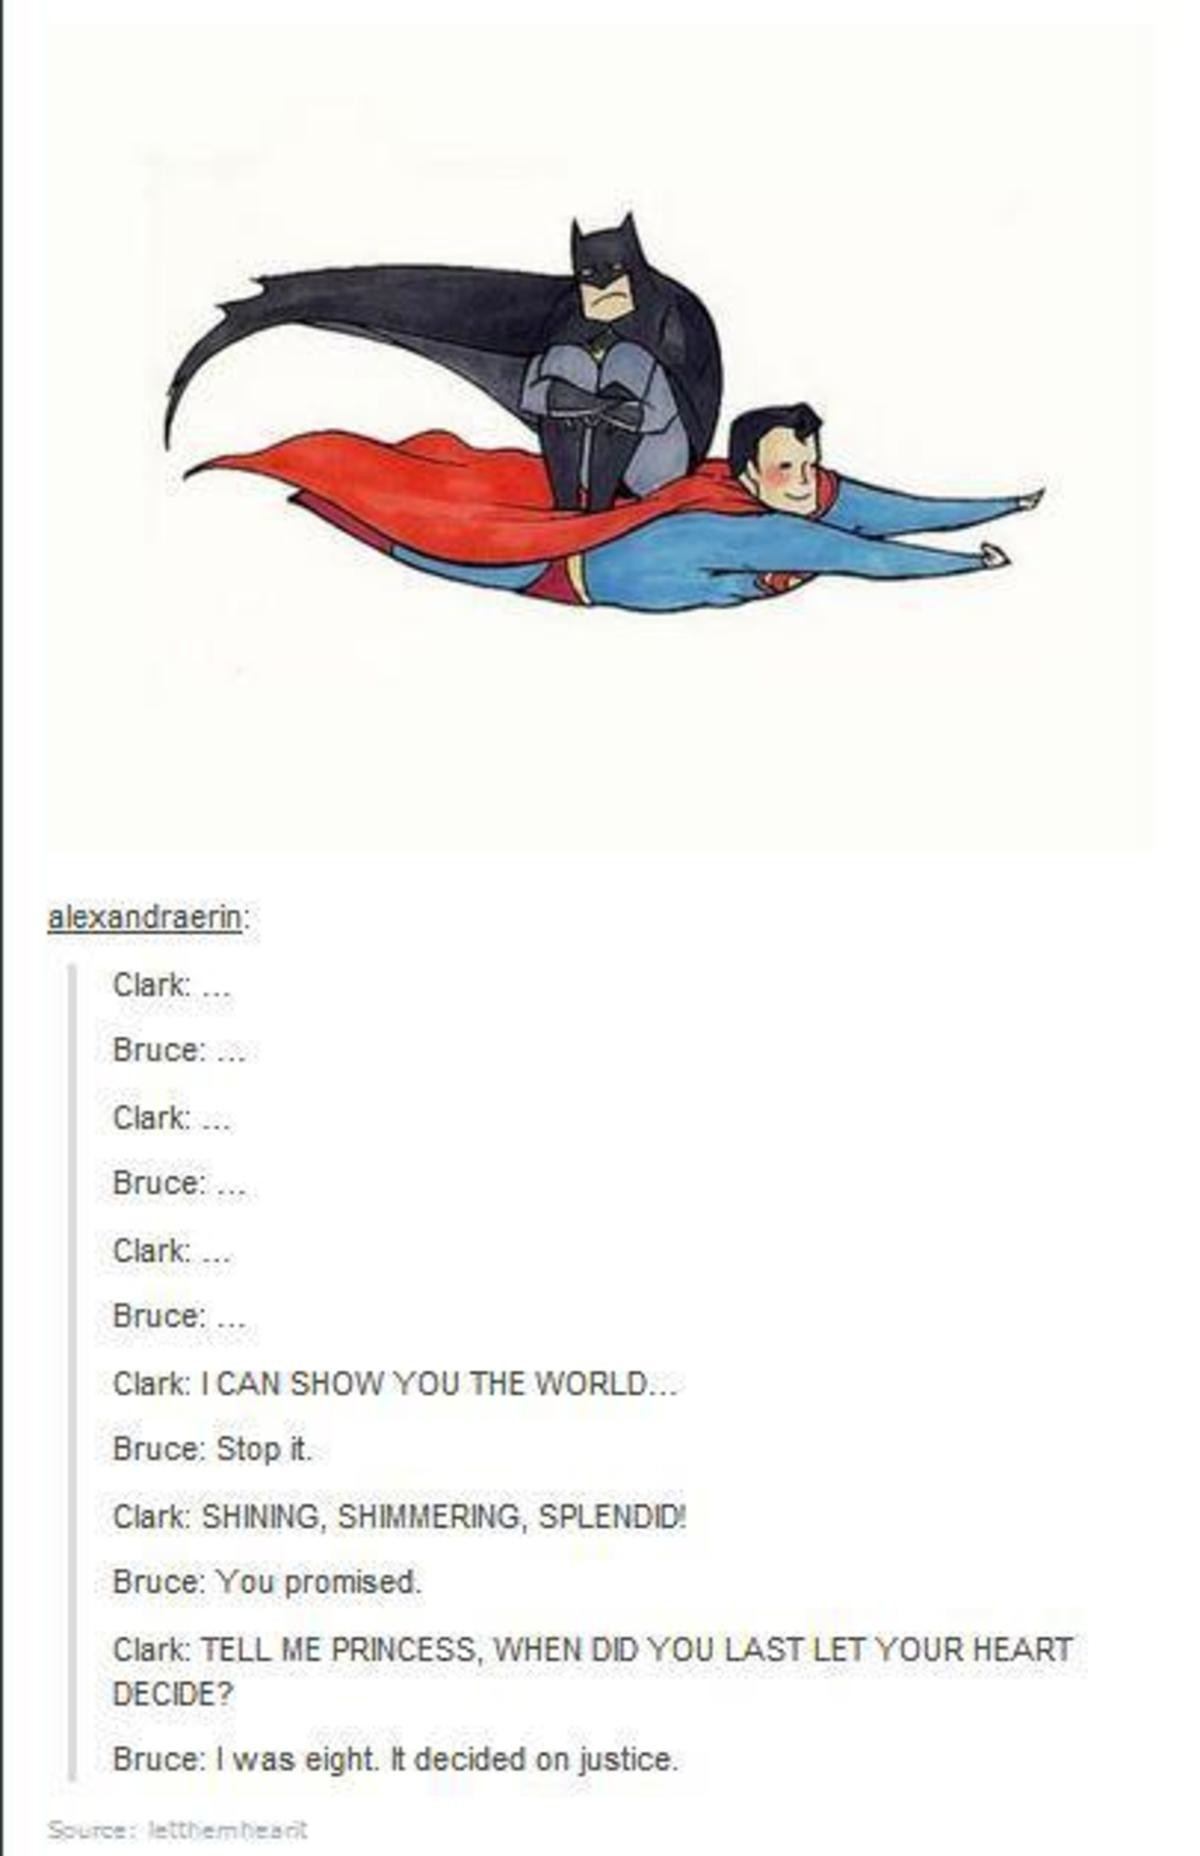 Bruce and Clark. . Clark: I CAN SHOW YOU THE WORLD... Bruce: Stop it. Clark: SHINING, SHIMMERING, SPEND!) Bruce: You promised. Clark: TELL ME PRINCESS, WHEN DD